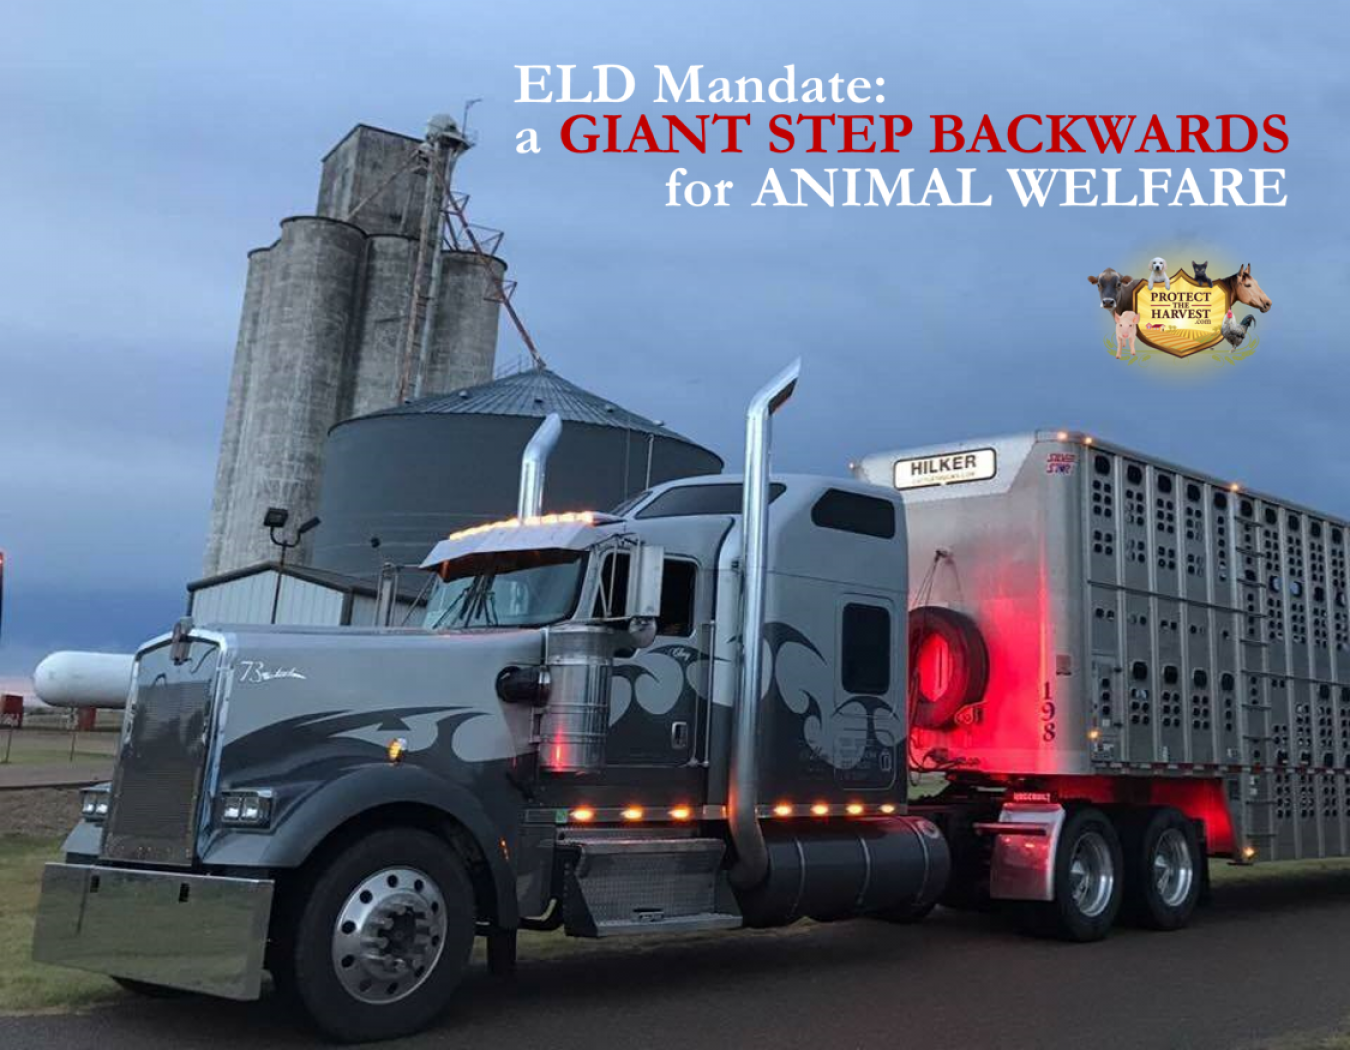 A Giant Step Back for Animal Welfare - ELD Mandate